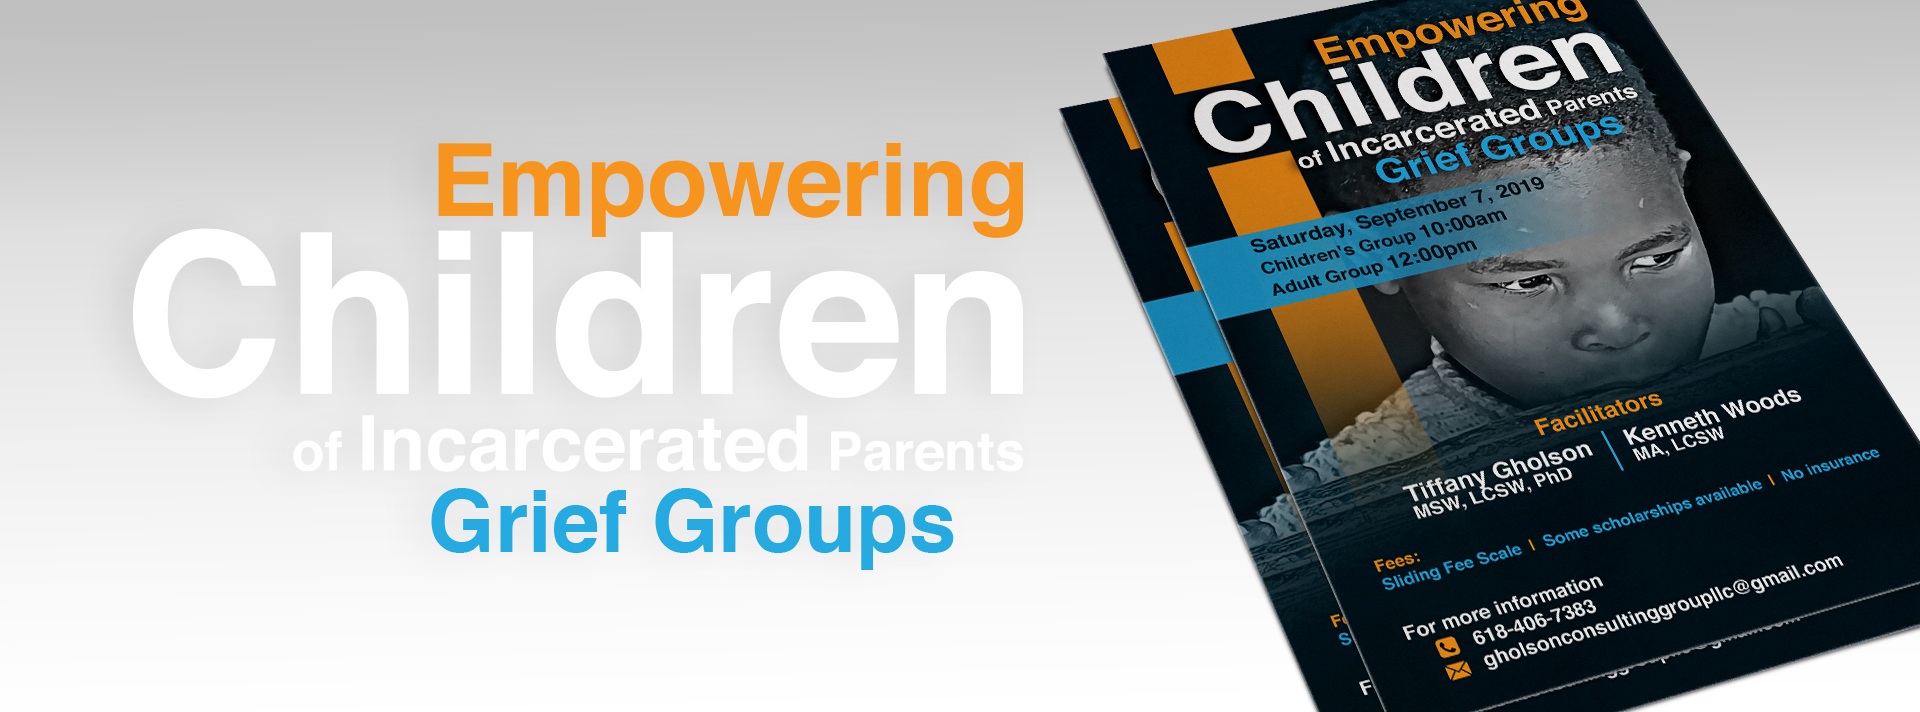 Empowering Children of Incarcerated Parents Grief Groups